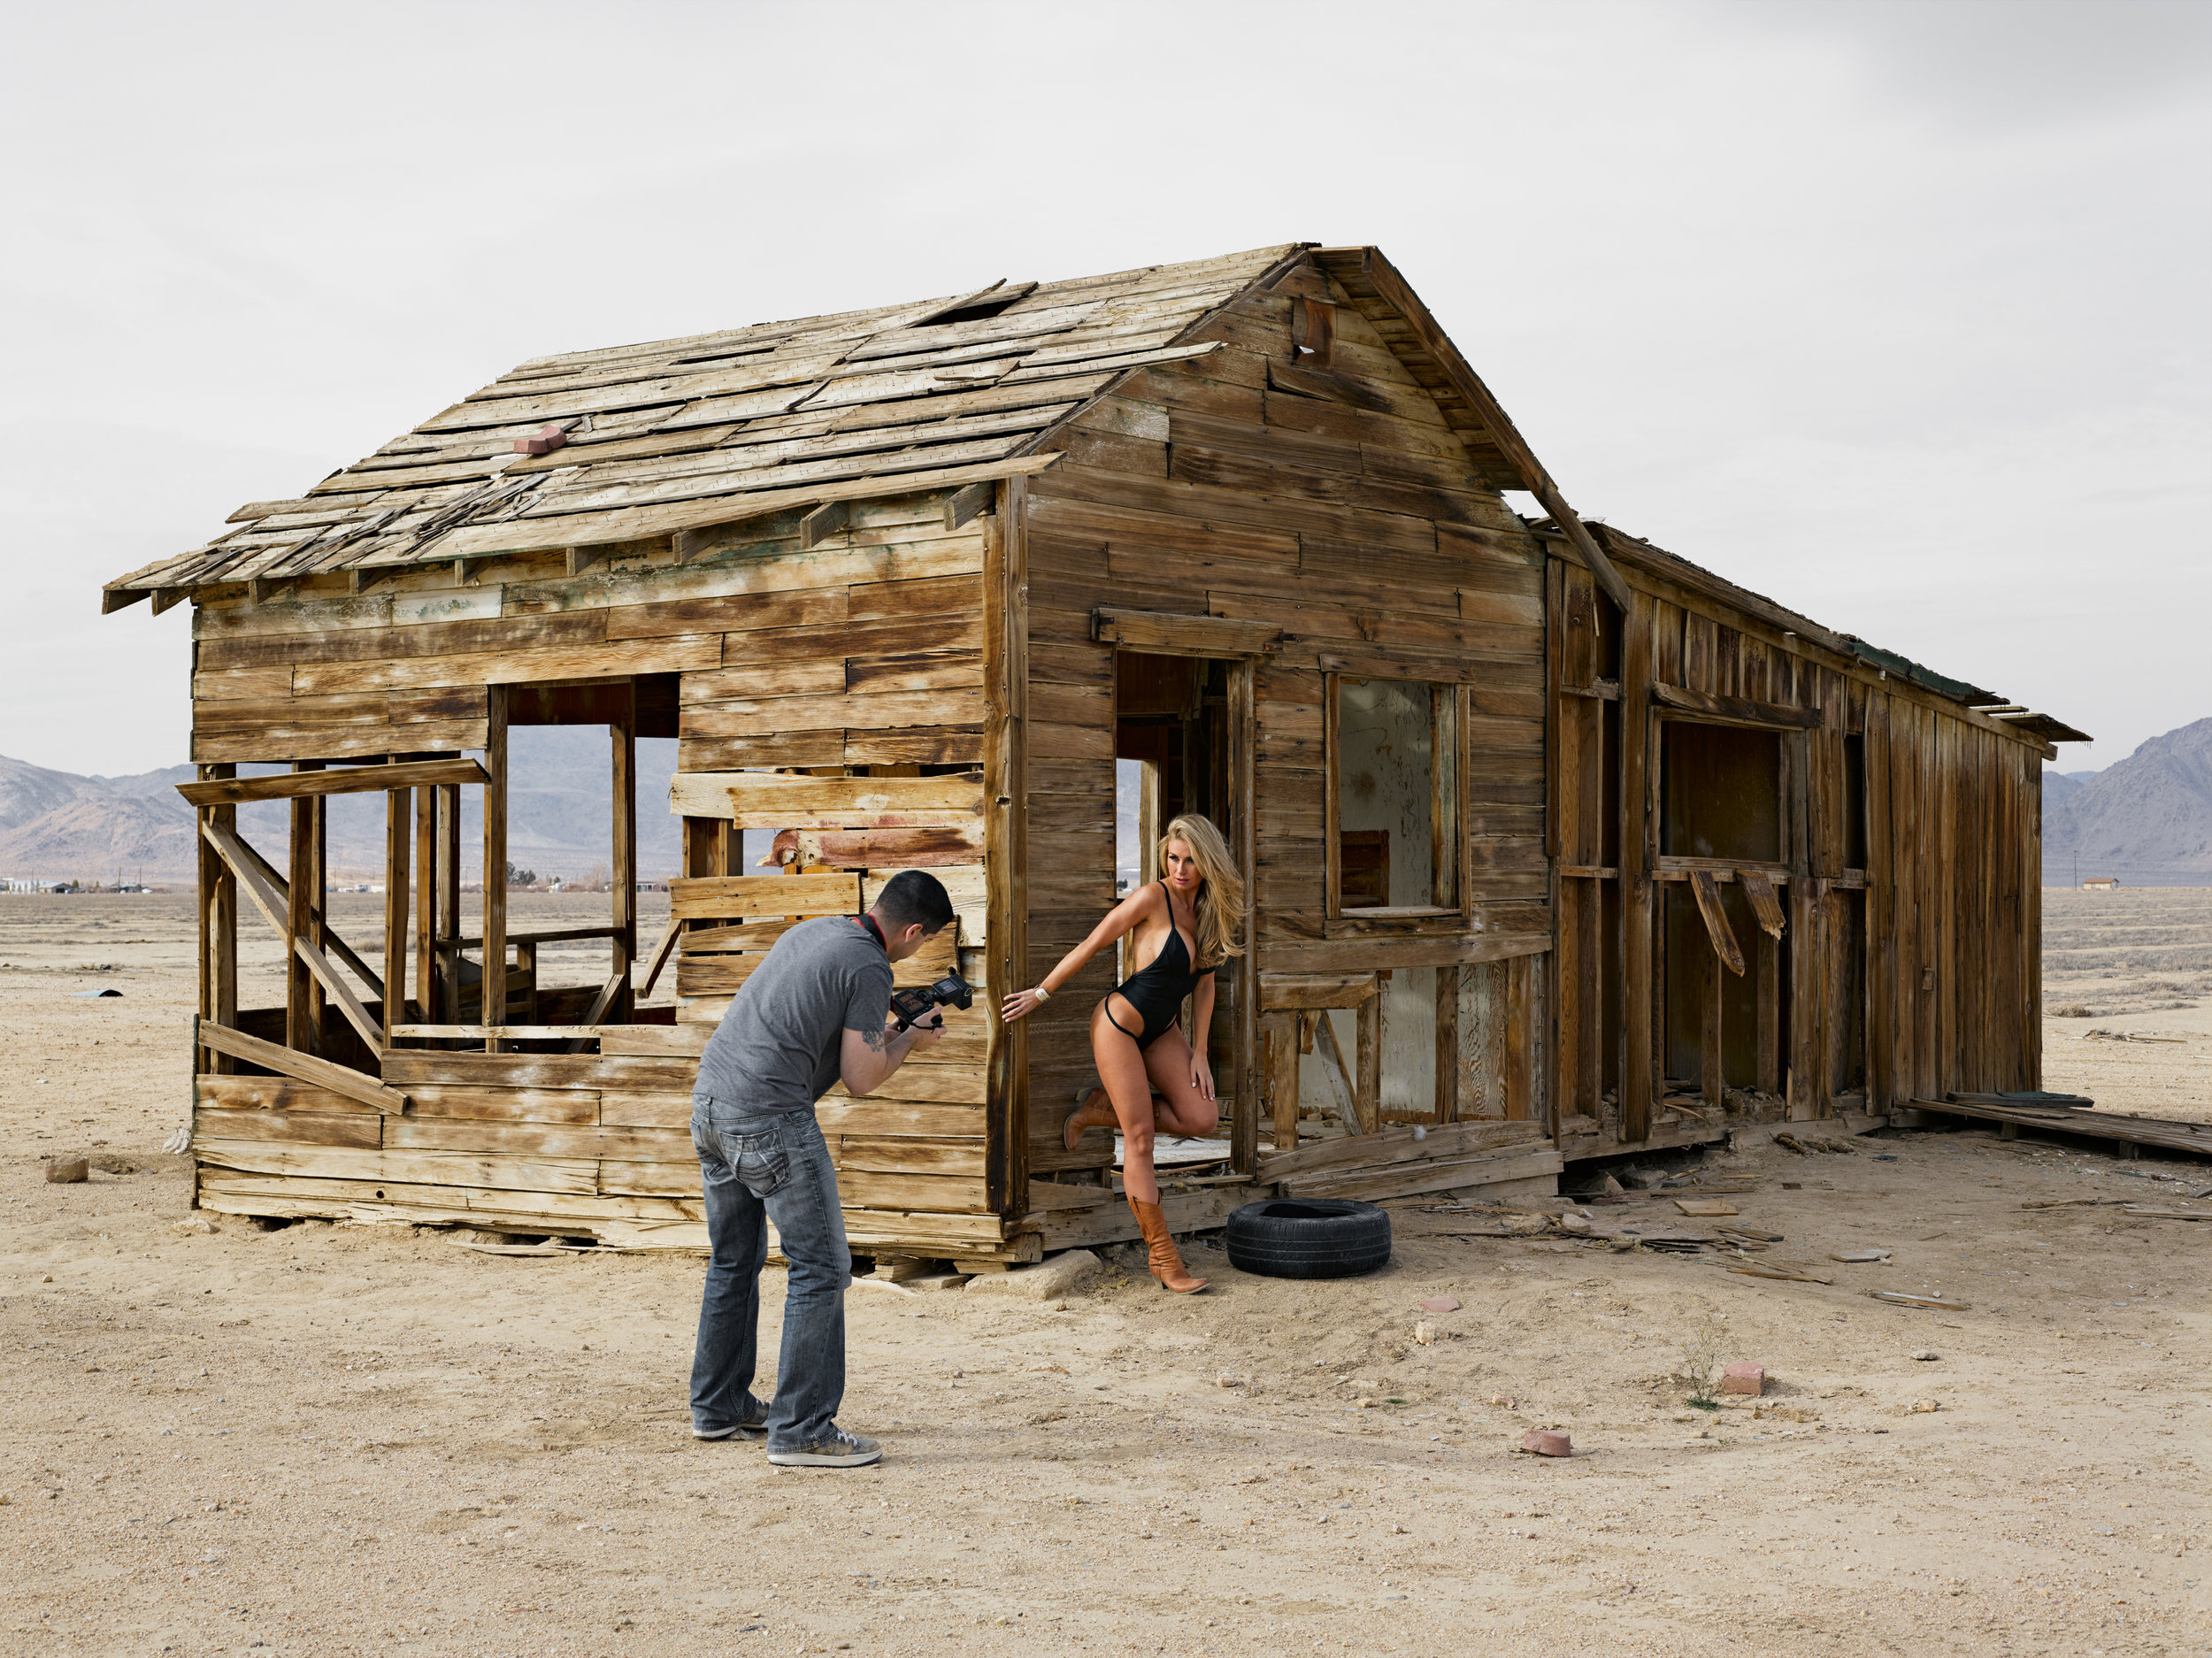 © Lucas Foglia (Dave and Jenny, Swimsuit Shoot on an Abandoned Farm, California 2014)